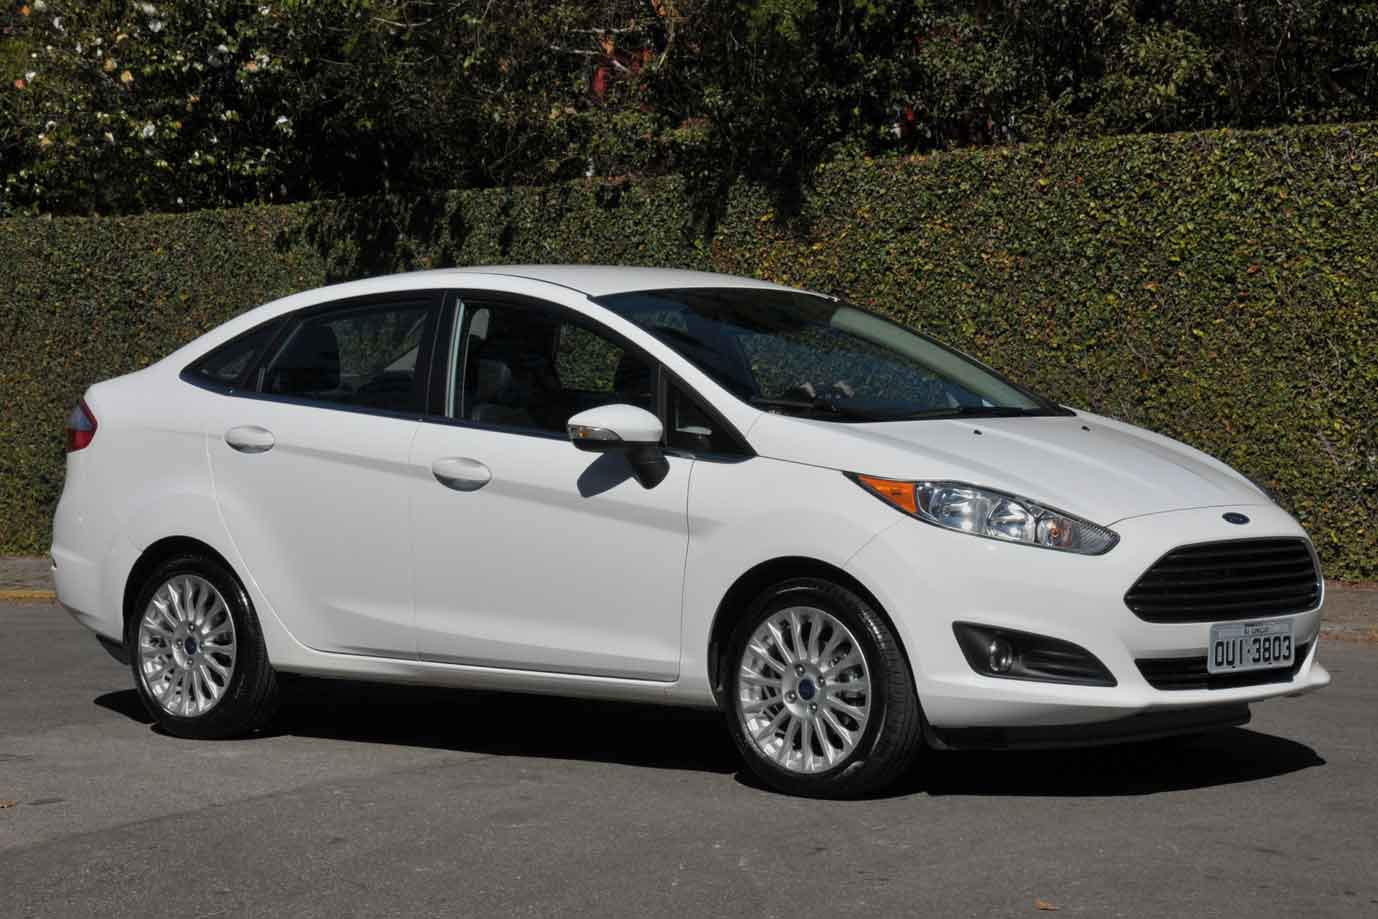 New Fiesta 2014 Mexicano Novo Ford Fiesta Sedan 2014 Chega Por R 49 900